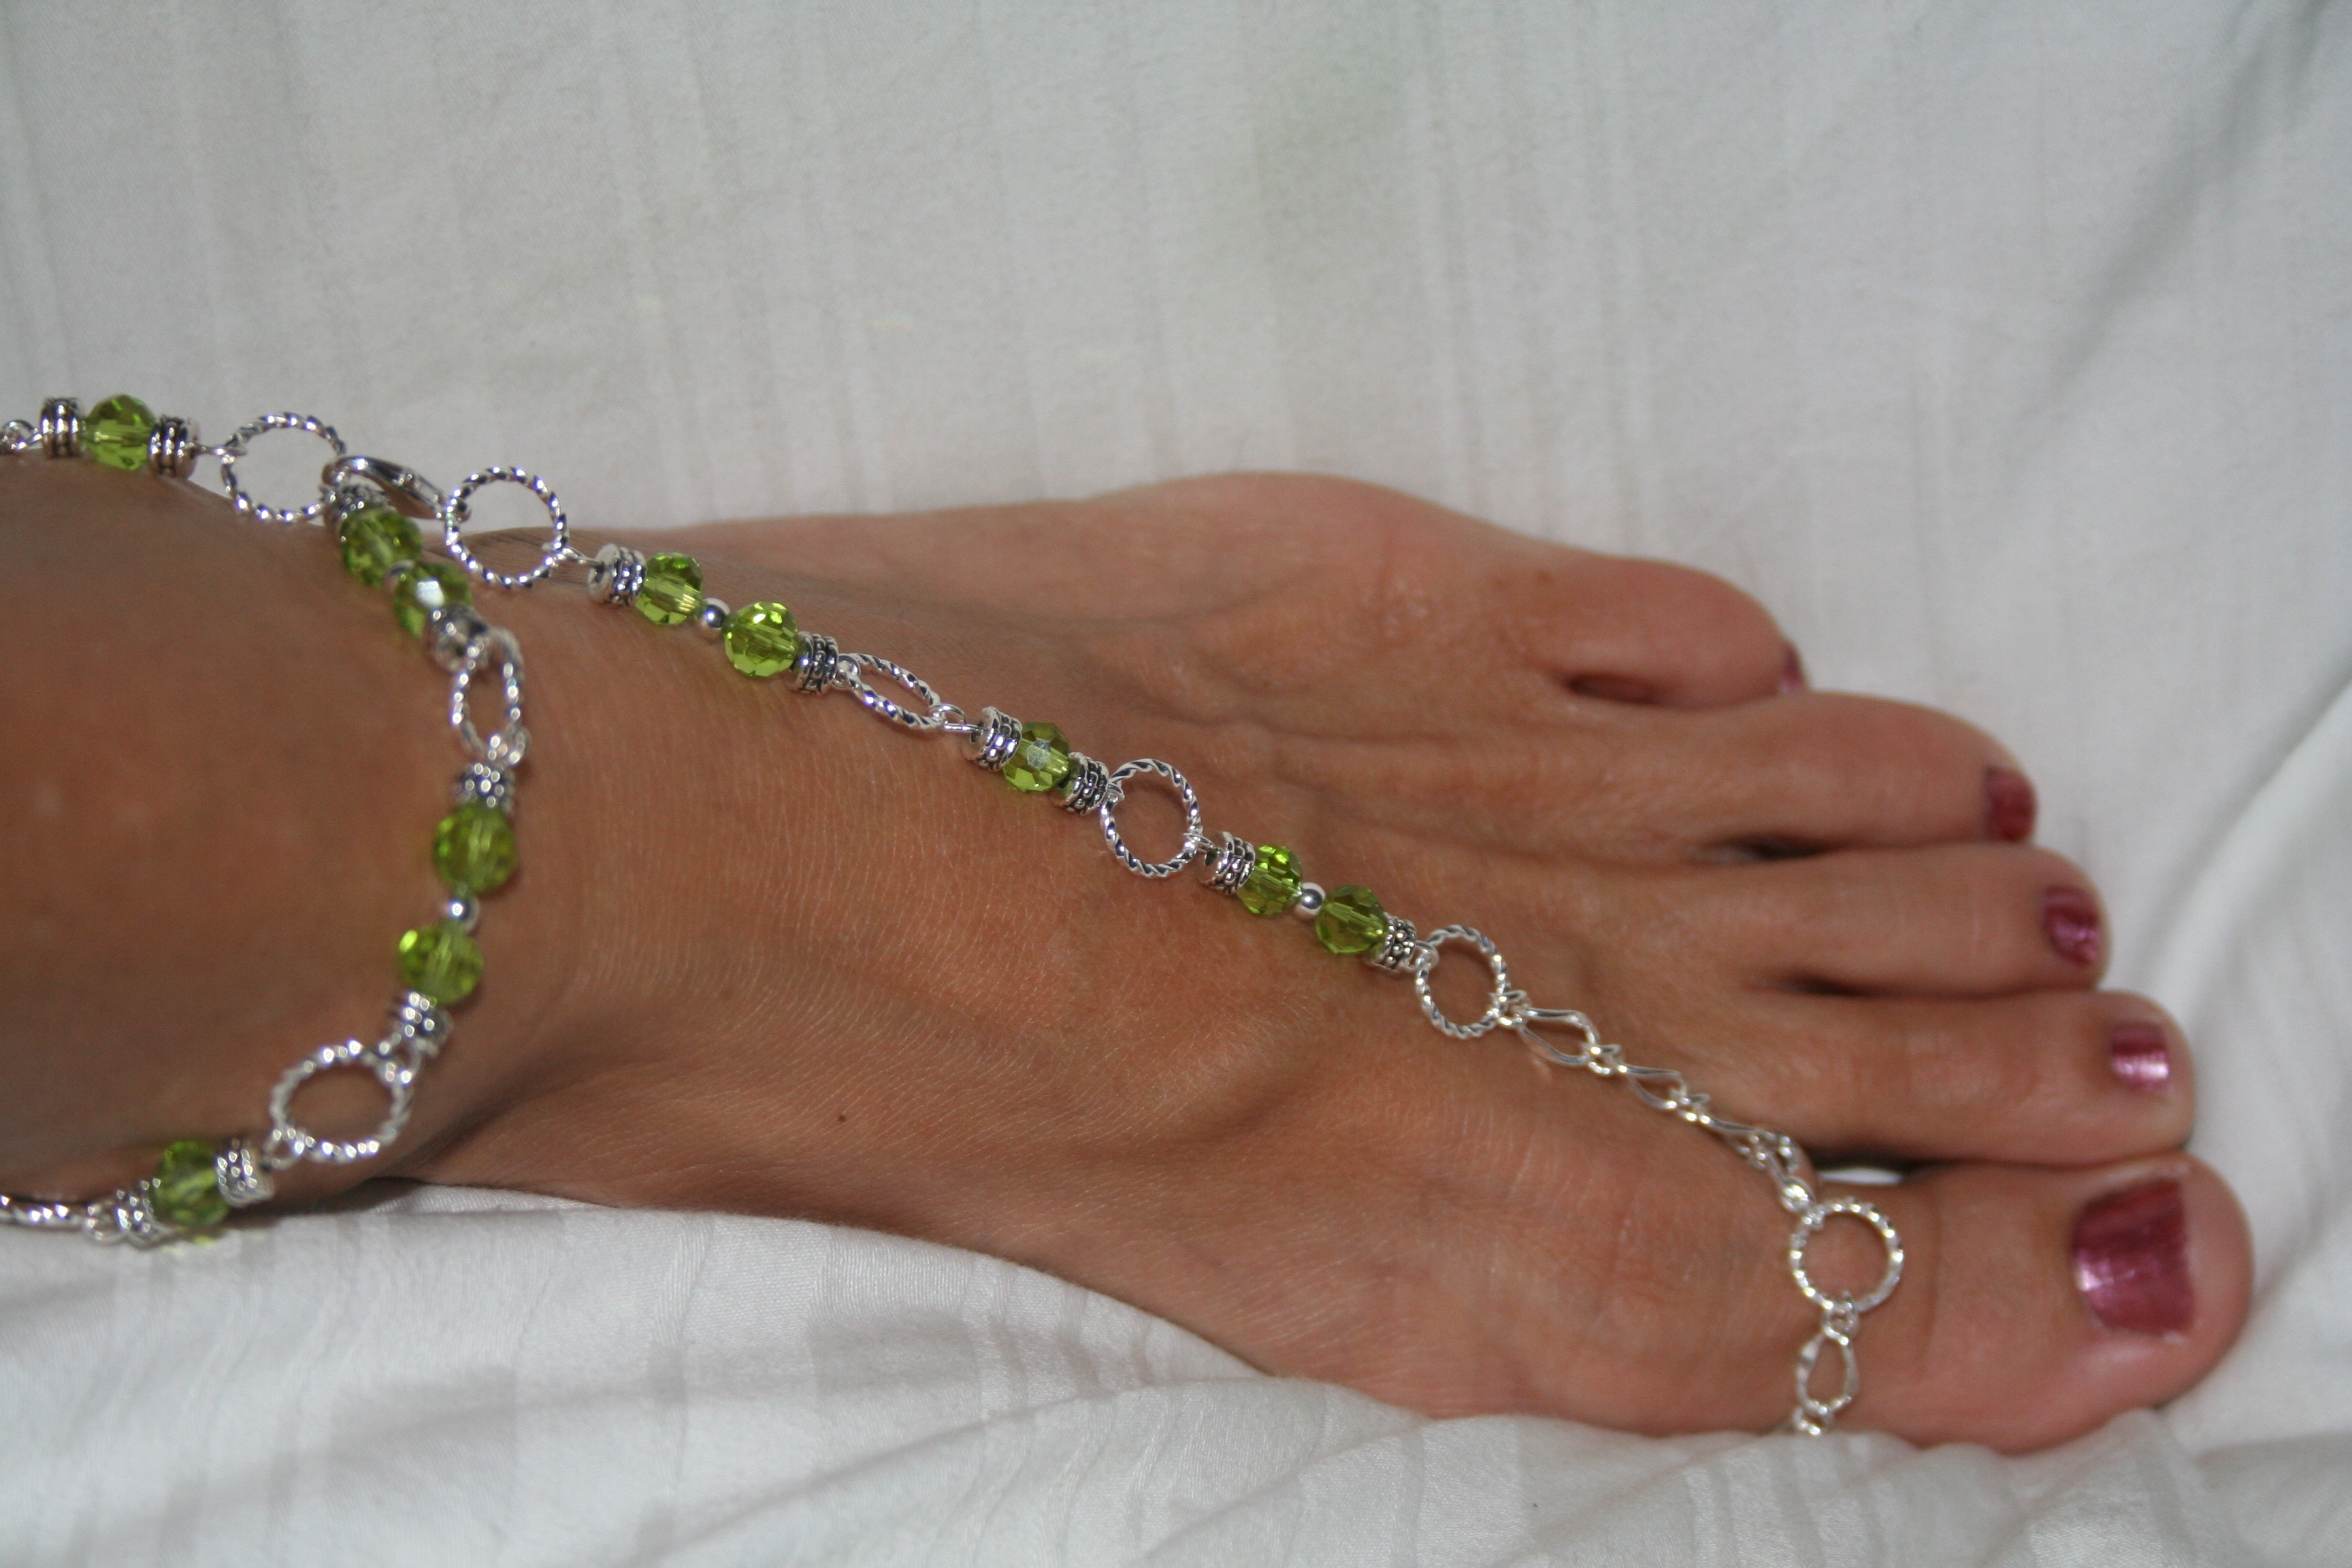 clear item for new anklet popular sandal sandals from shipping foot in rhinestone barefoot fashion wedding beach free bracelets anklets bracelet silver design indian women sexy ankle jewelry